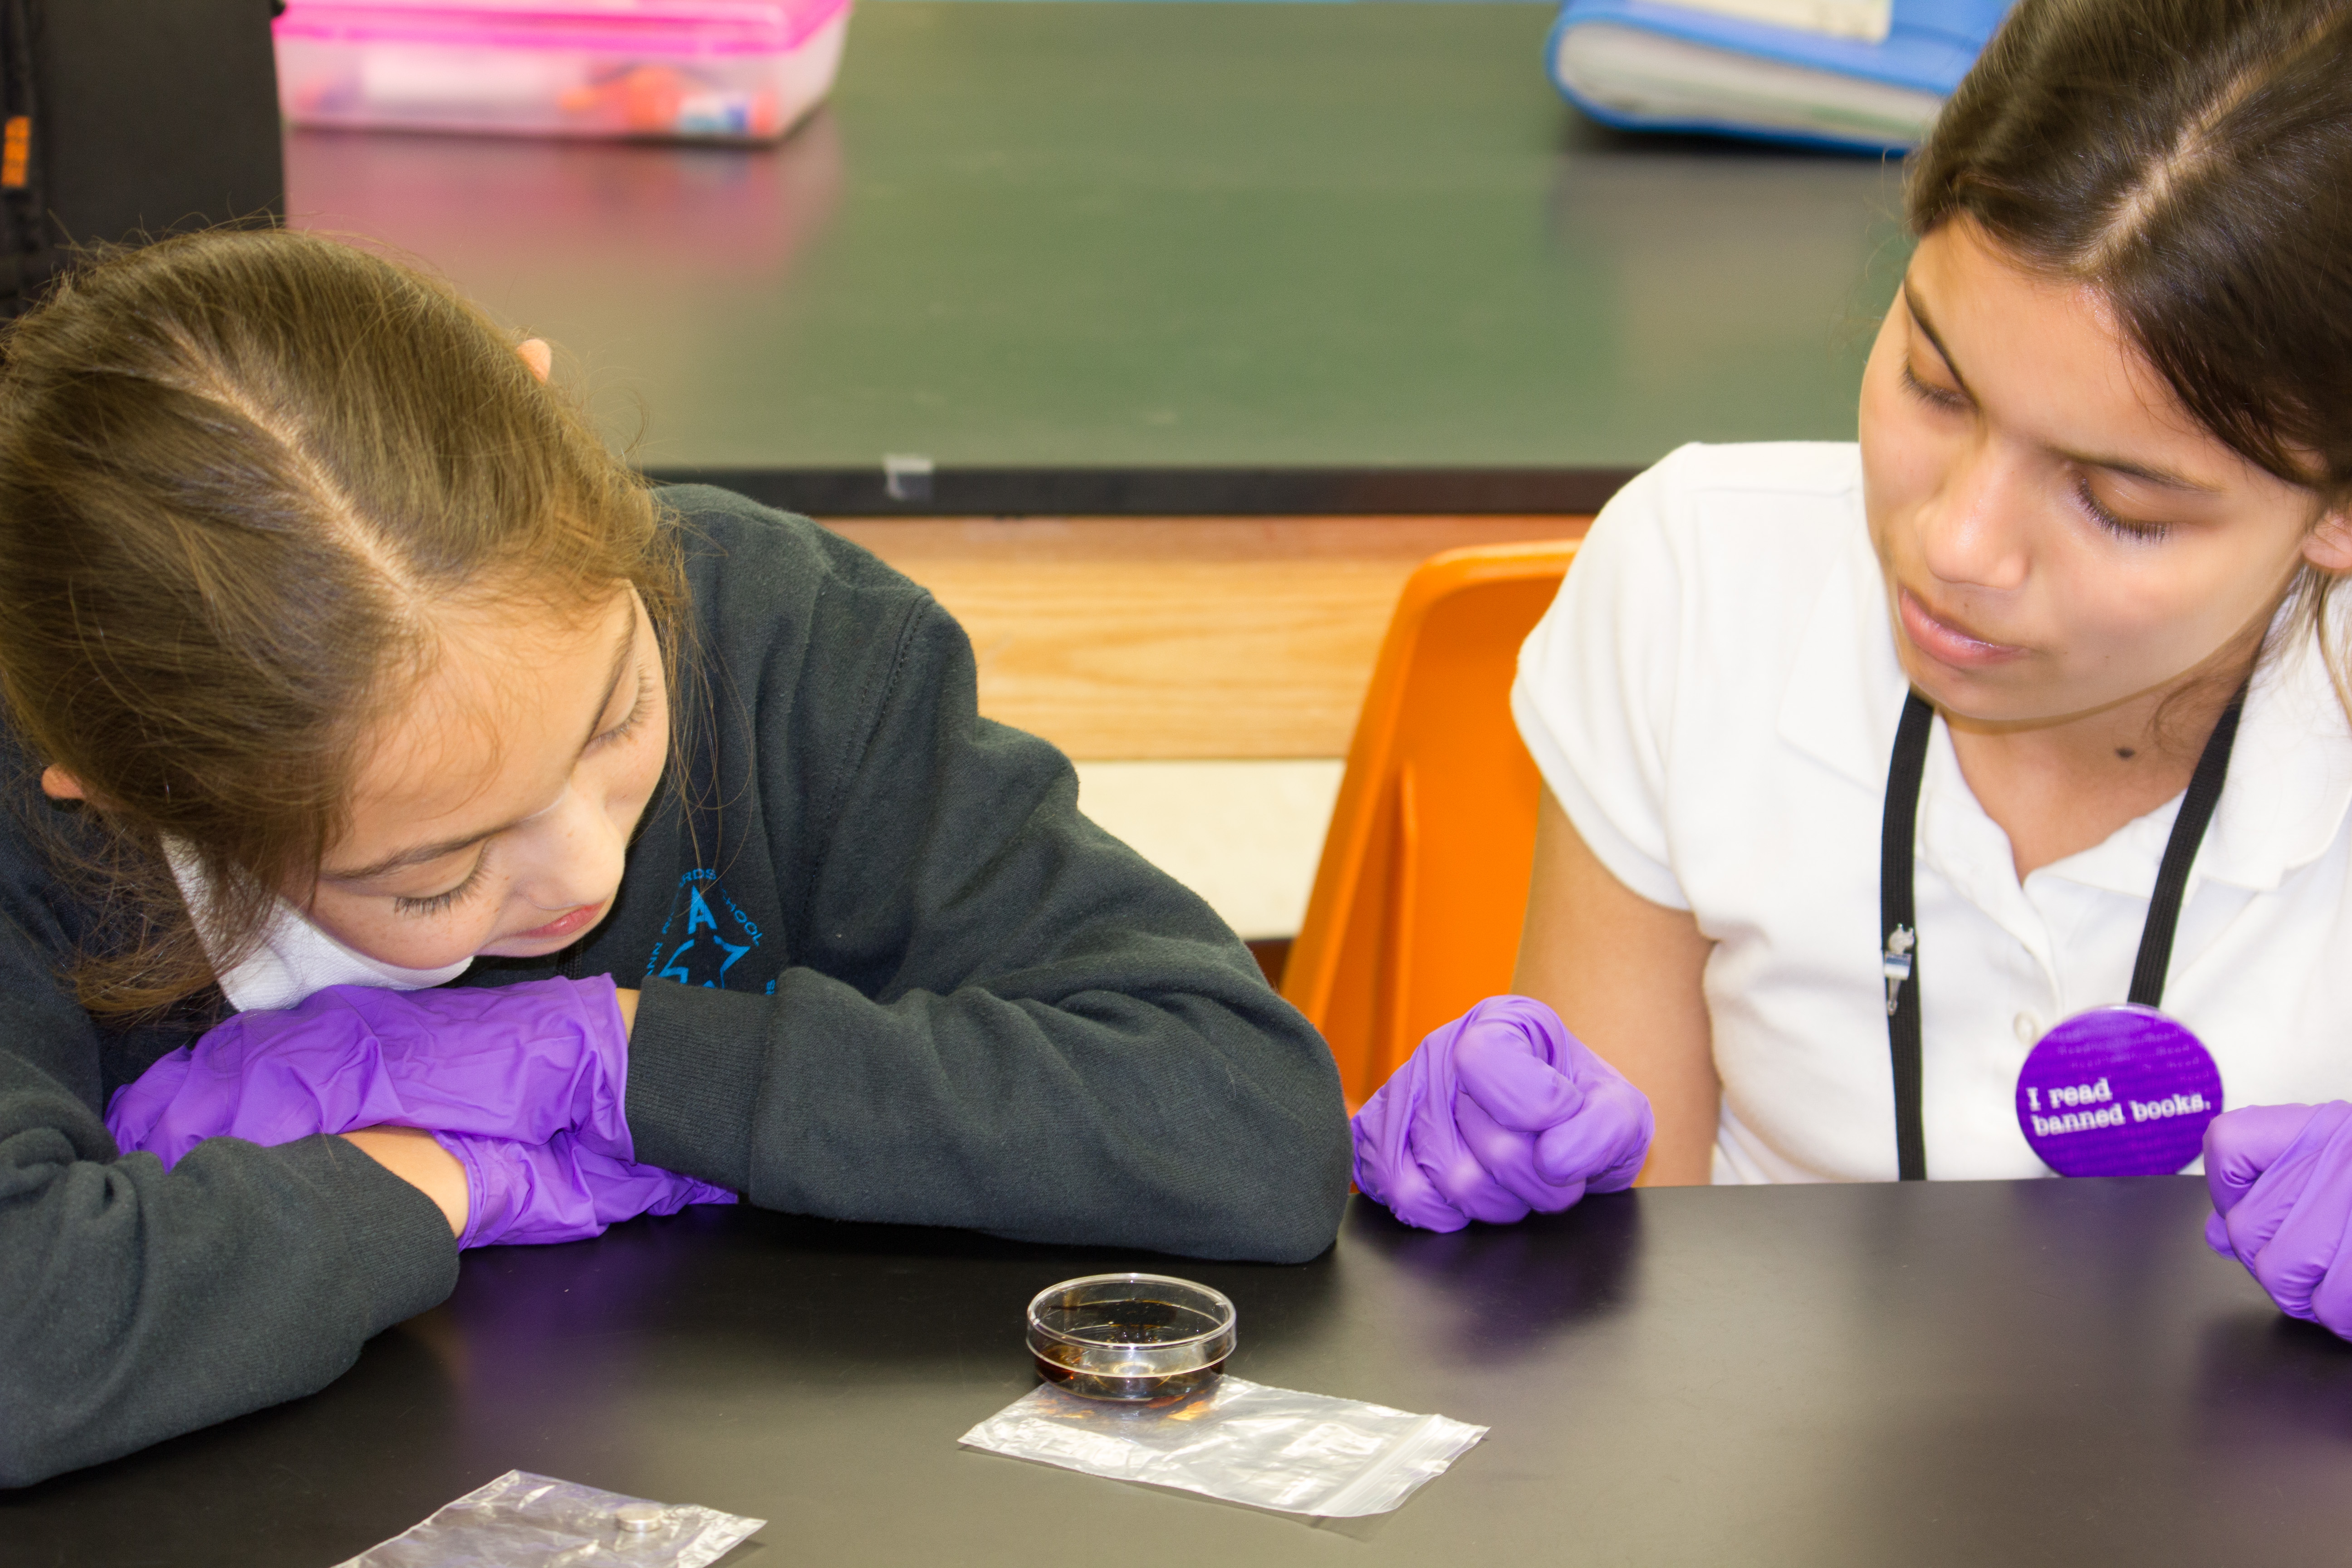 Two female middle school students are sitting at a table contemplating a science experiment they are conducting. The science experiment sits in a petri dish in front of them and they are wearing purple latex gloves.